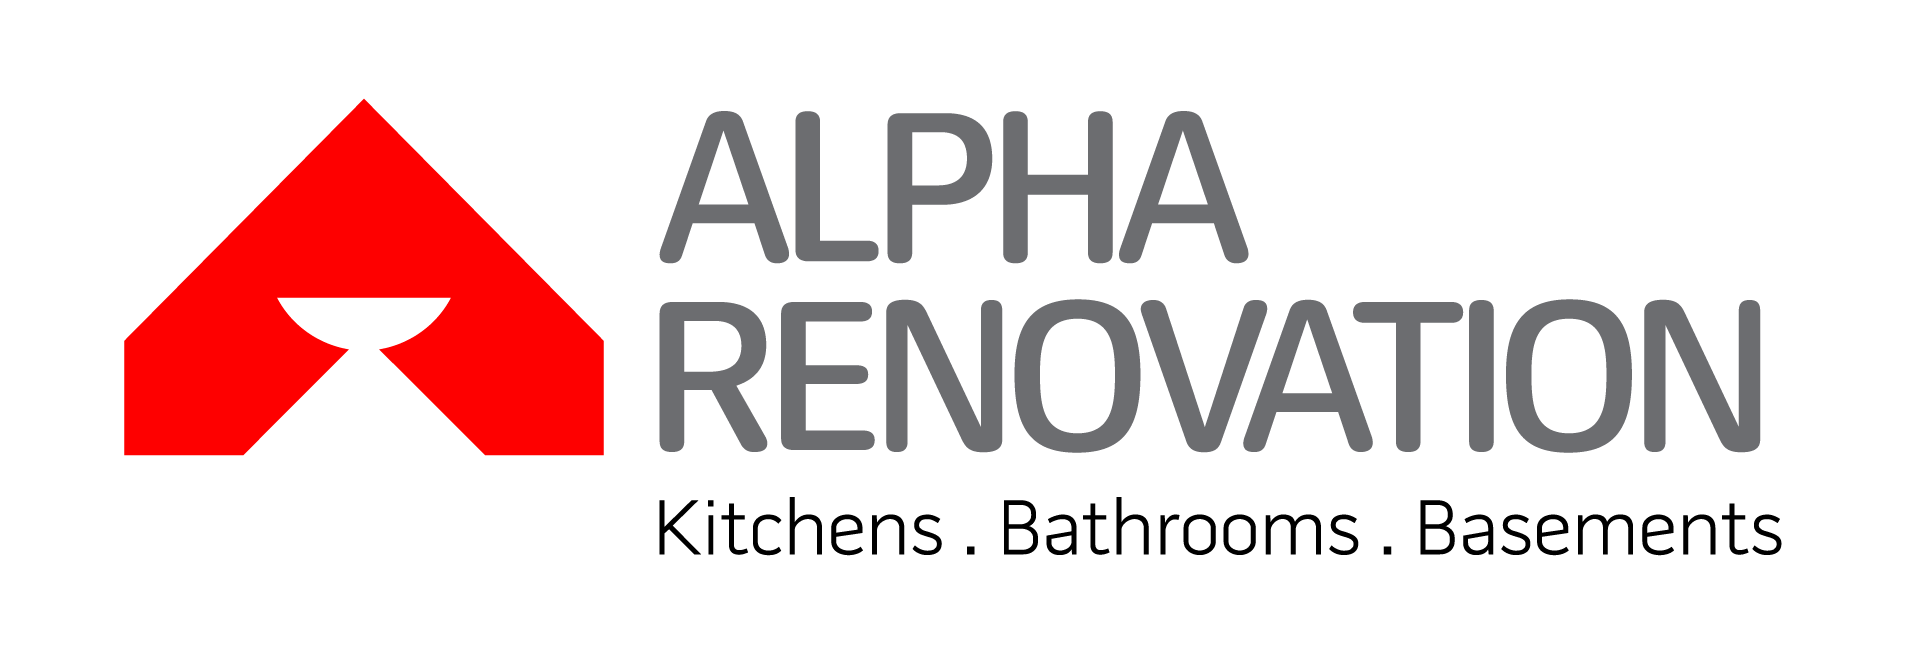 Alpha Renovation